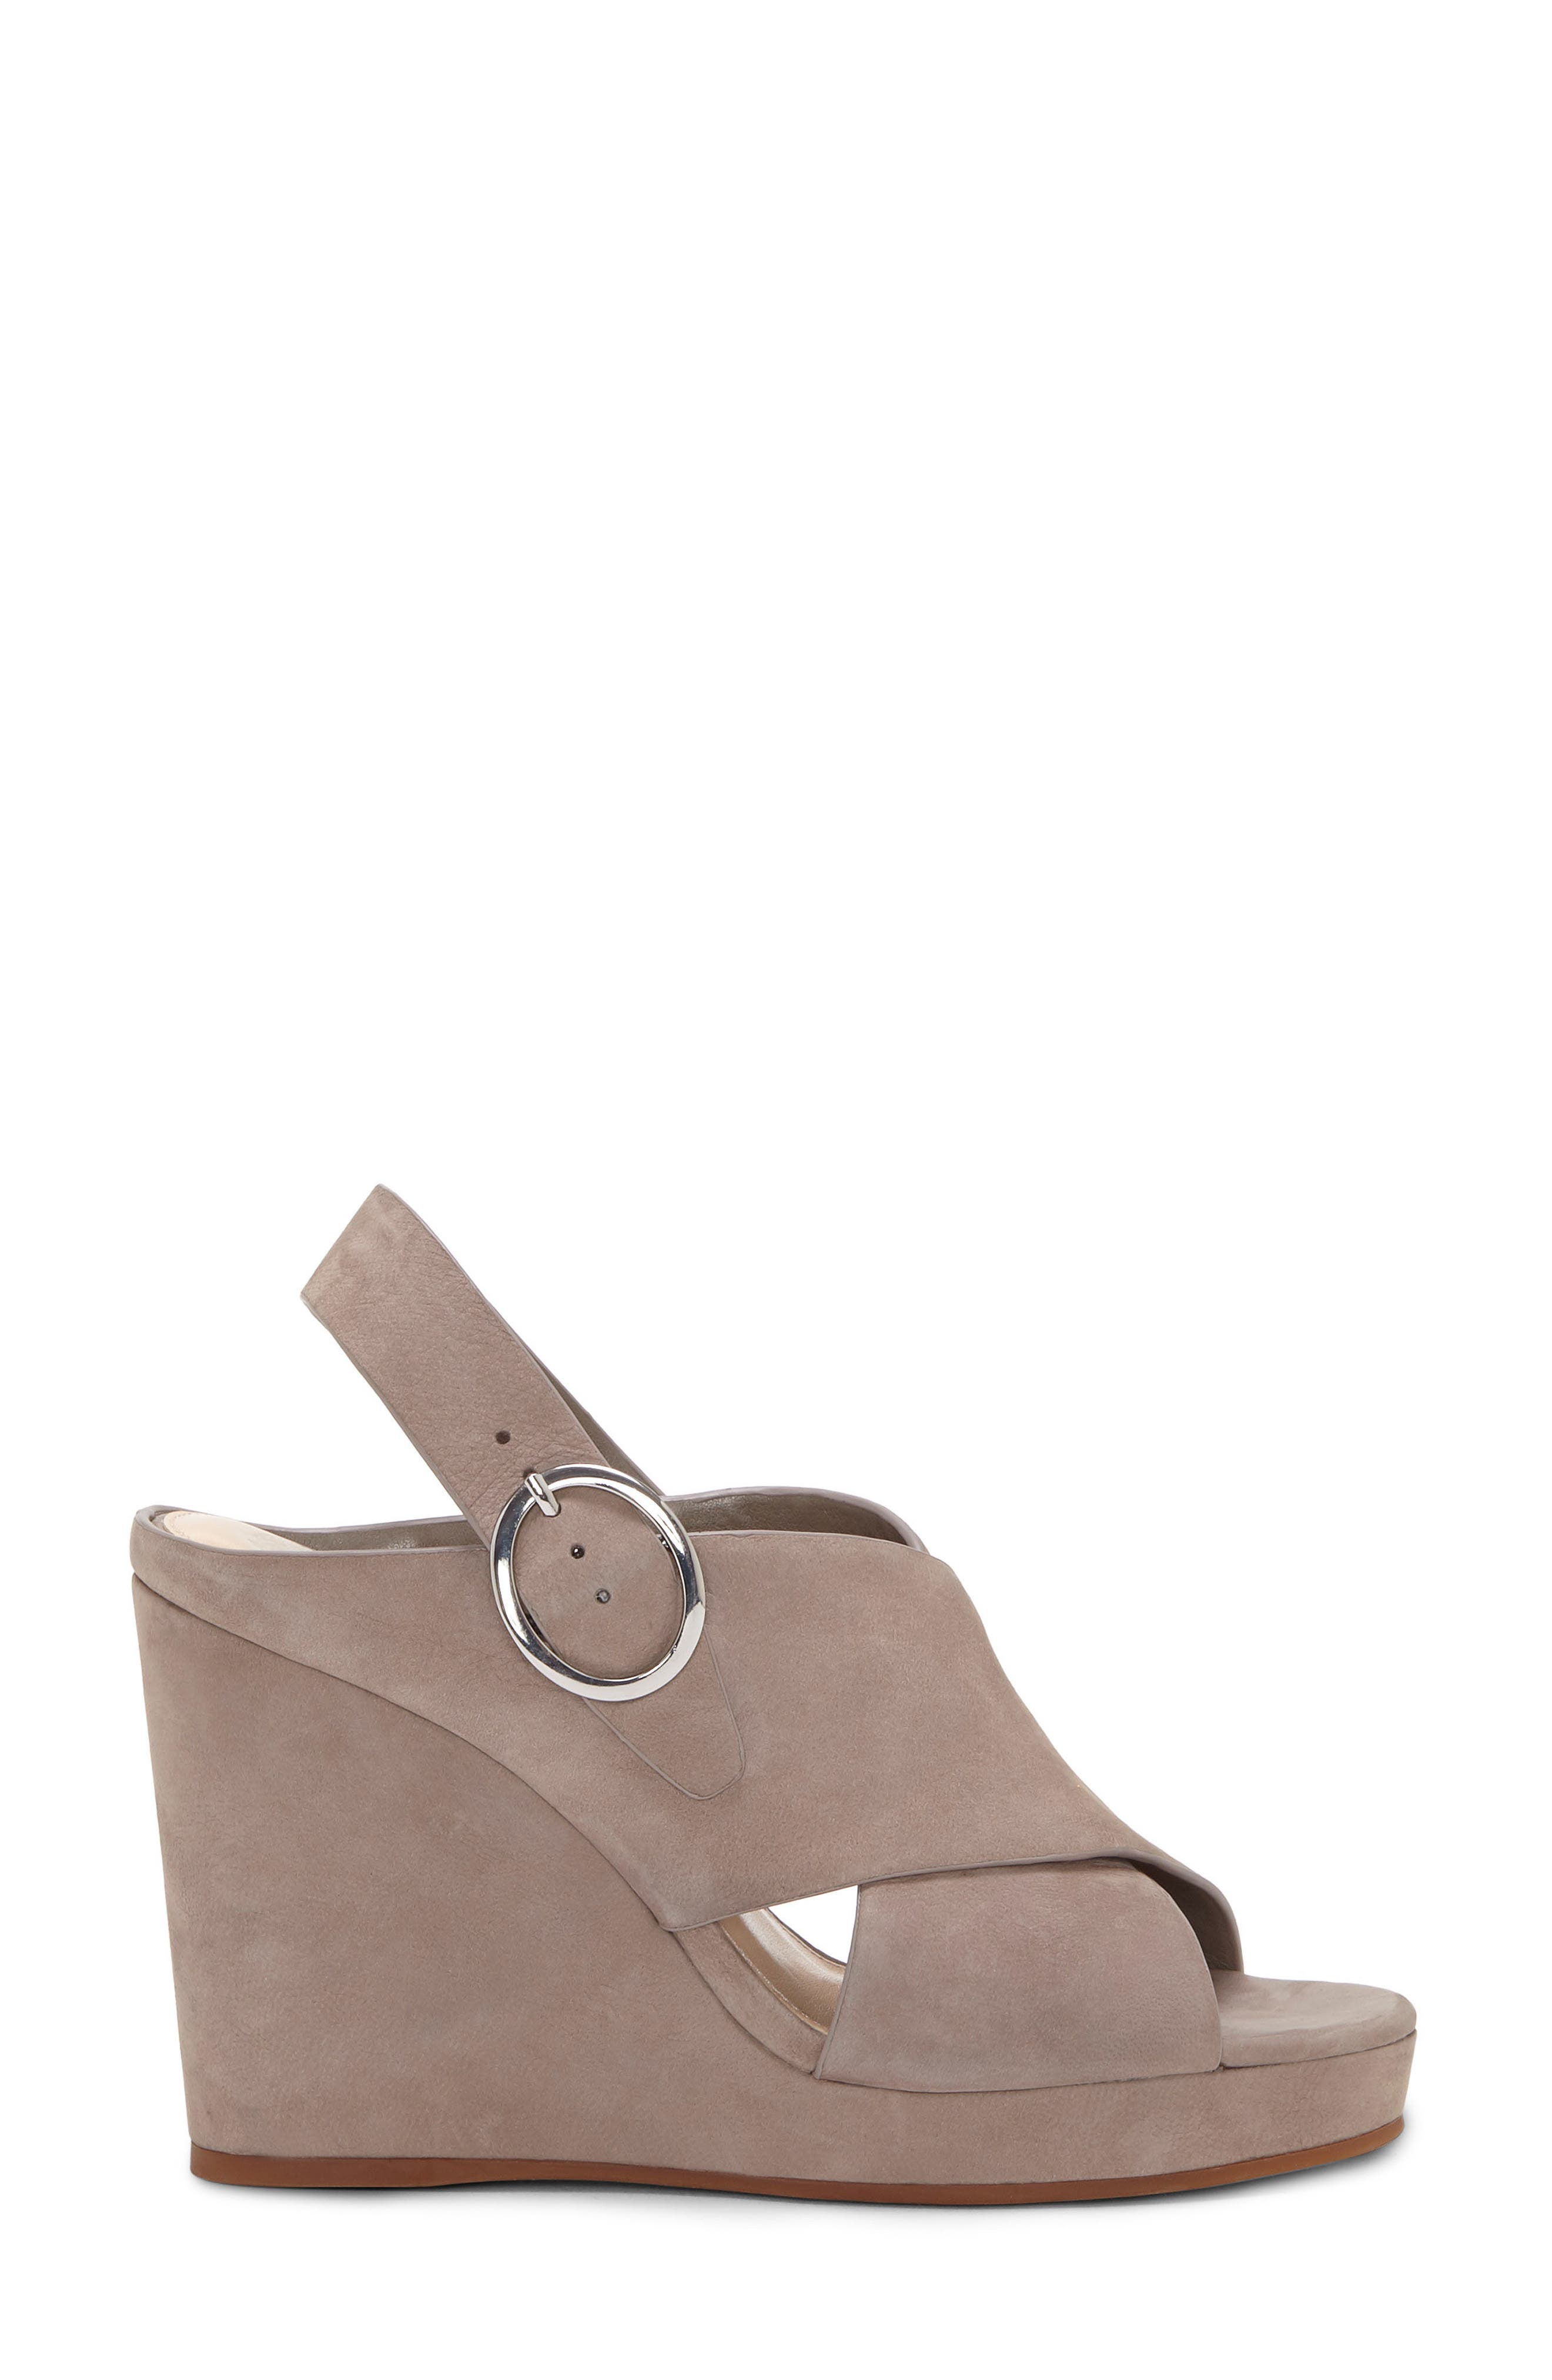 Iteena Wedge Sandal,                             Alternate thumbnail 4, color,                             Hippo Grey Leather